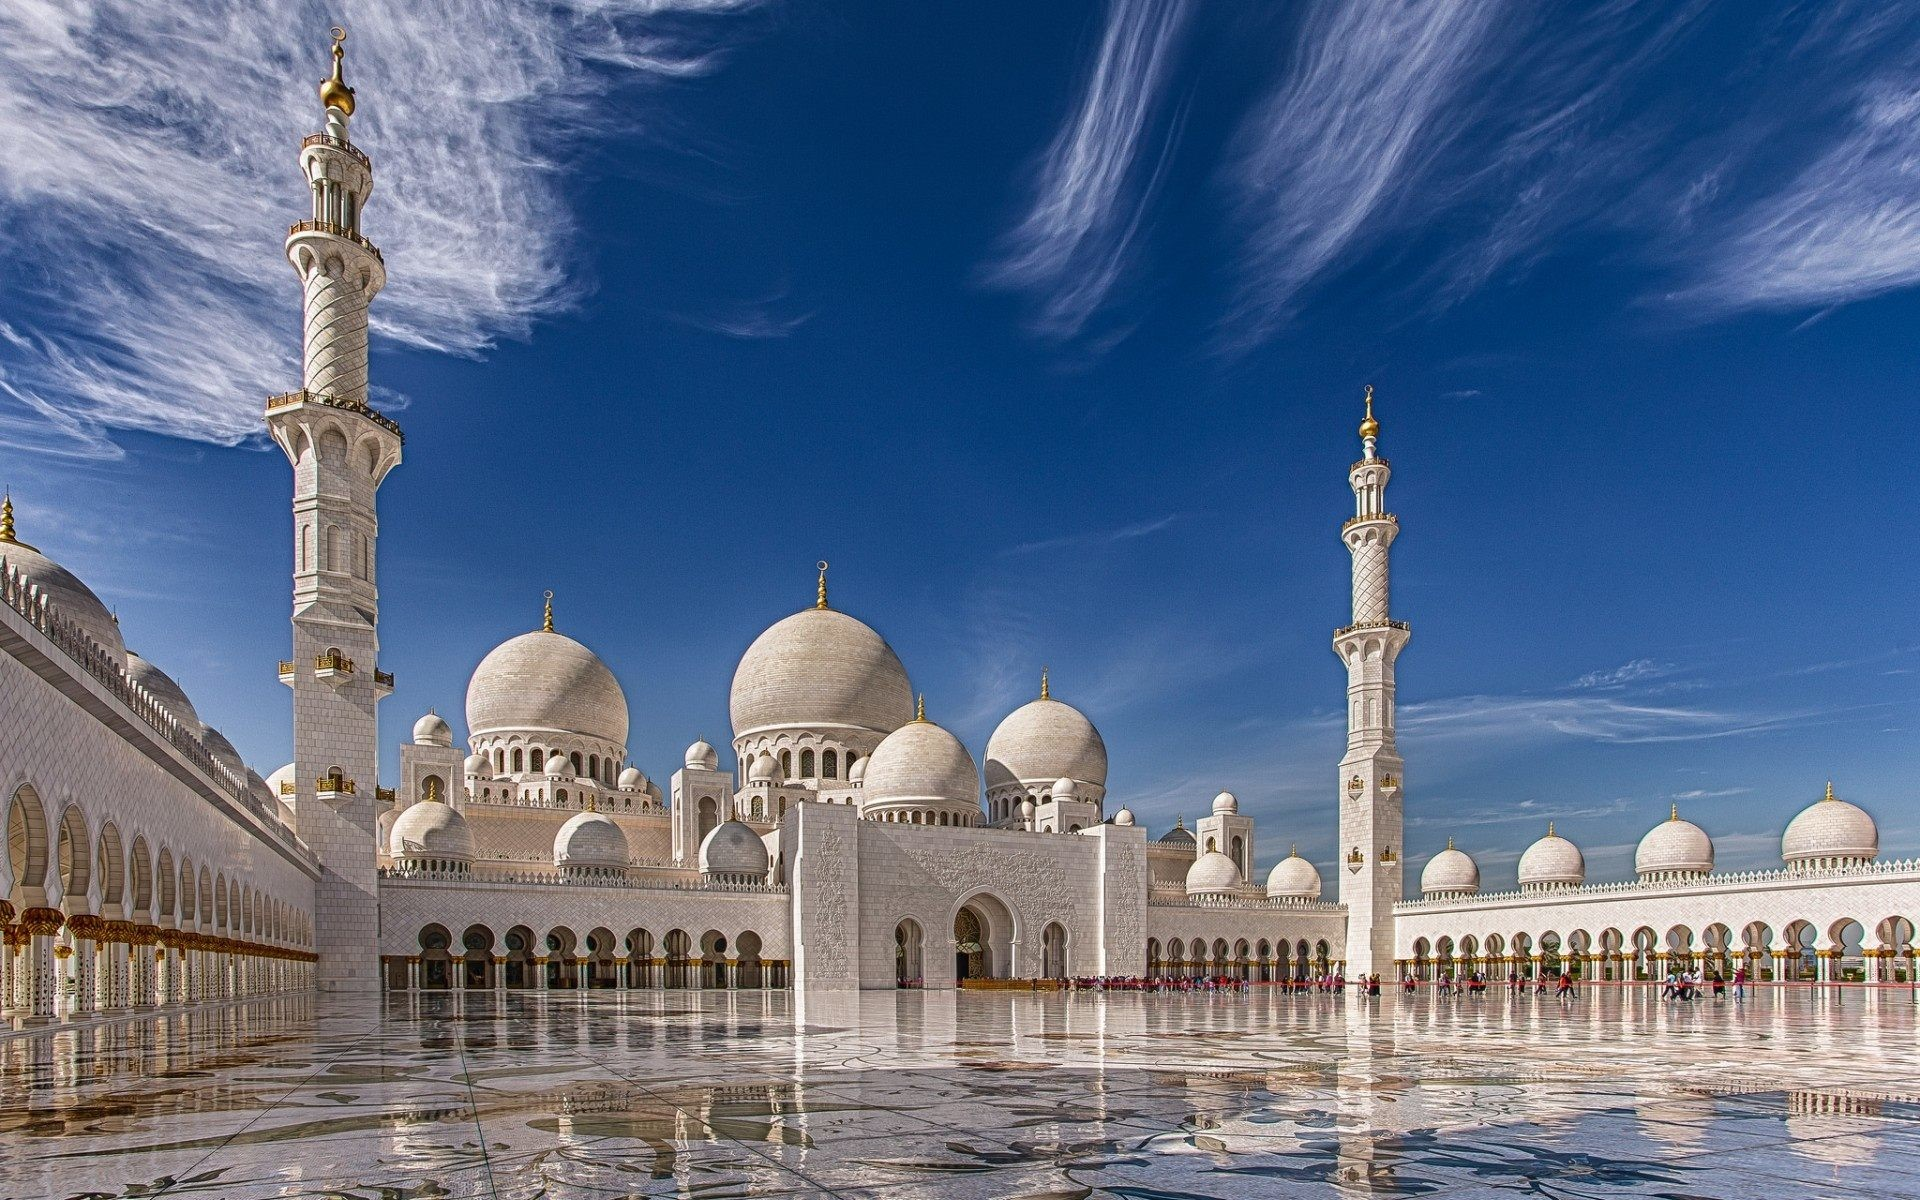 1920x1200 full HD Sheikh Zayed Grand Mosque Abu Dhabi Desktop wallpaper download free  for Widescreen, Mobile